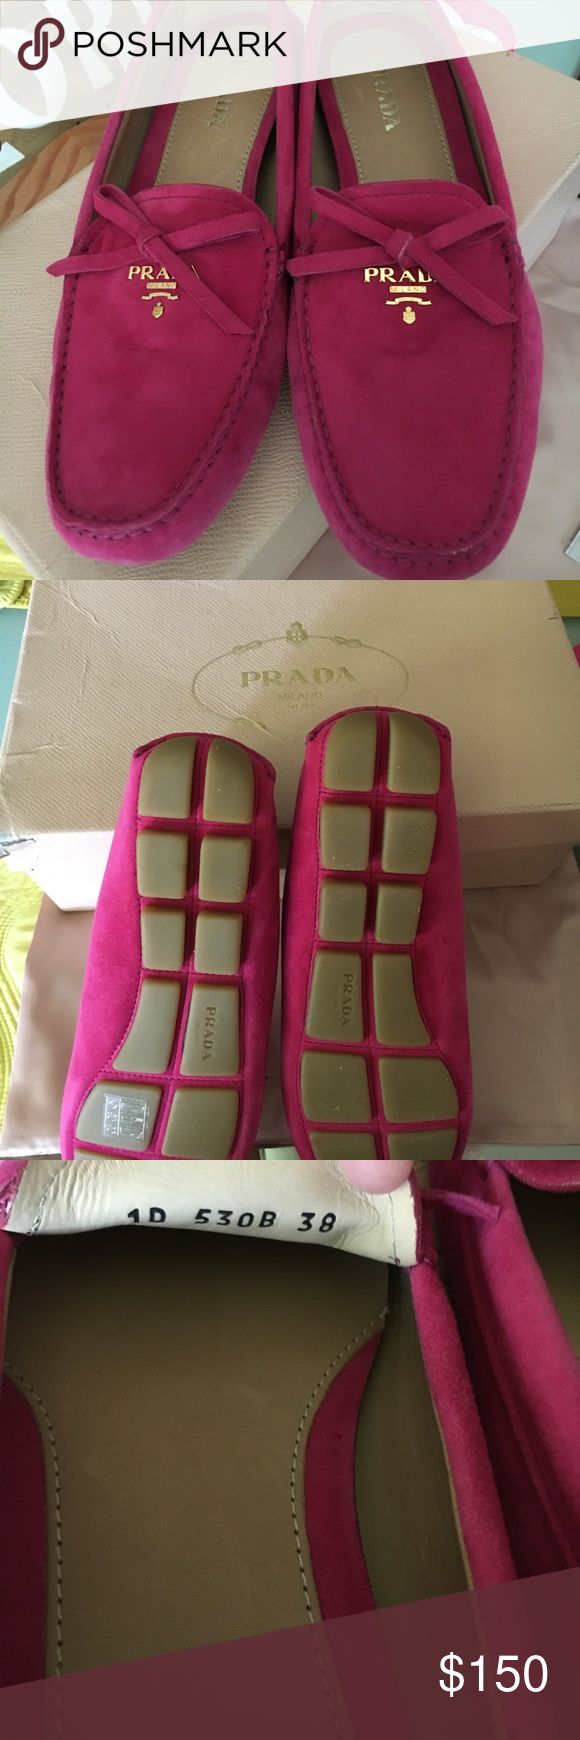 Authentic Prada driving loafers Never used in a box with dust bag... can fit size 7 or 7.5 Prada Shoes Flats & Loafers